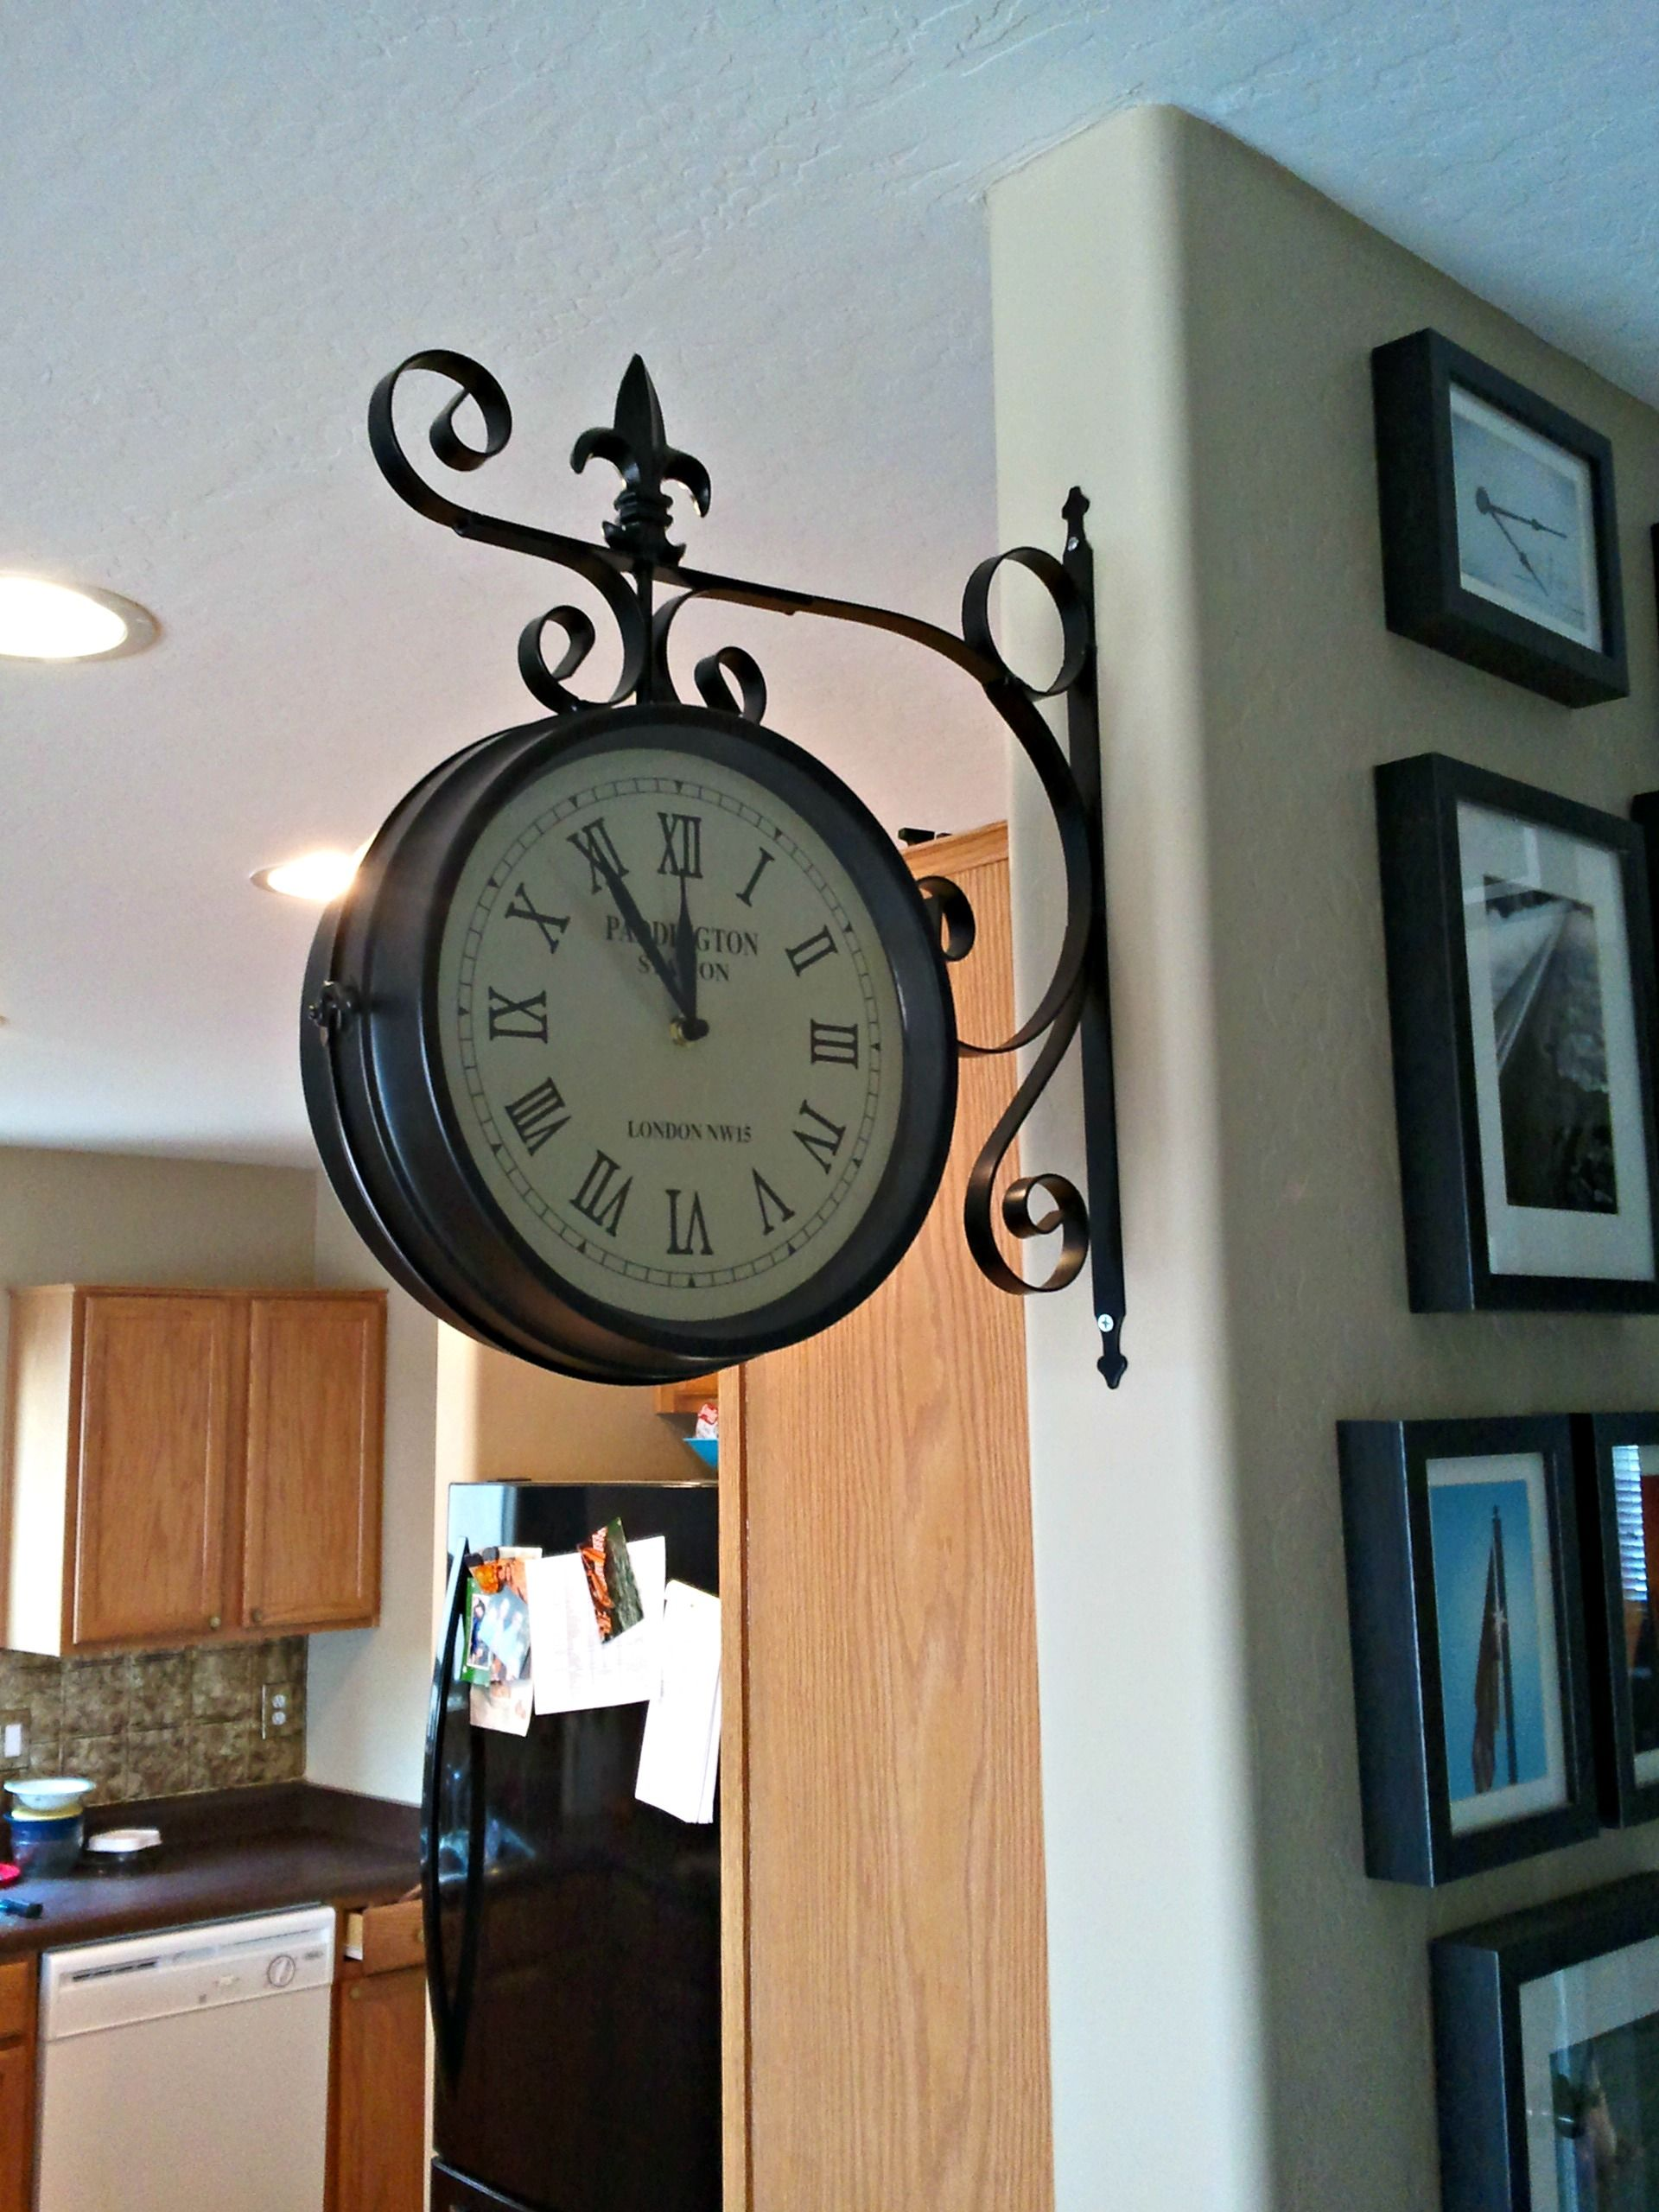 Train Station Wall Clocks A Clock On The Is Not Only Or Timepiece It S Statement Revealing Your Personali